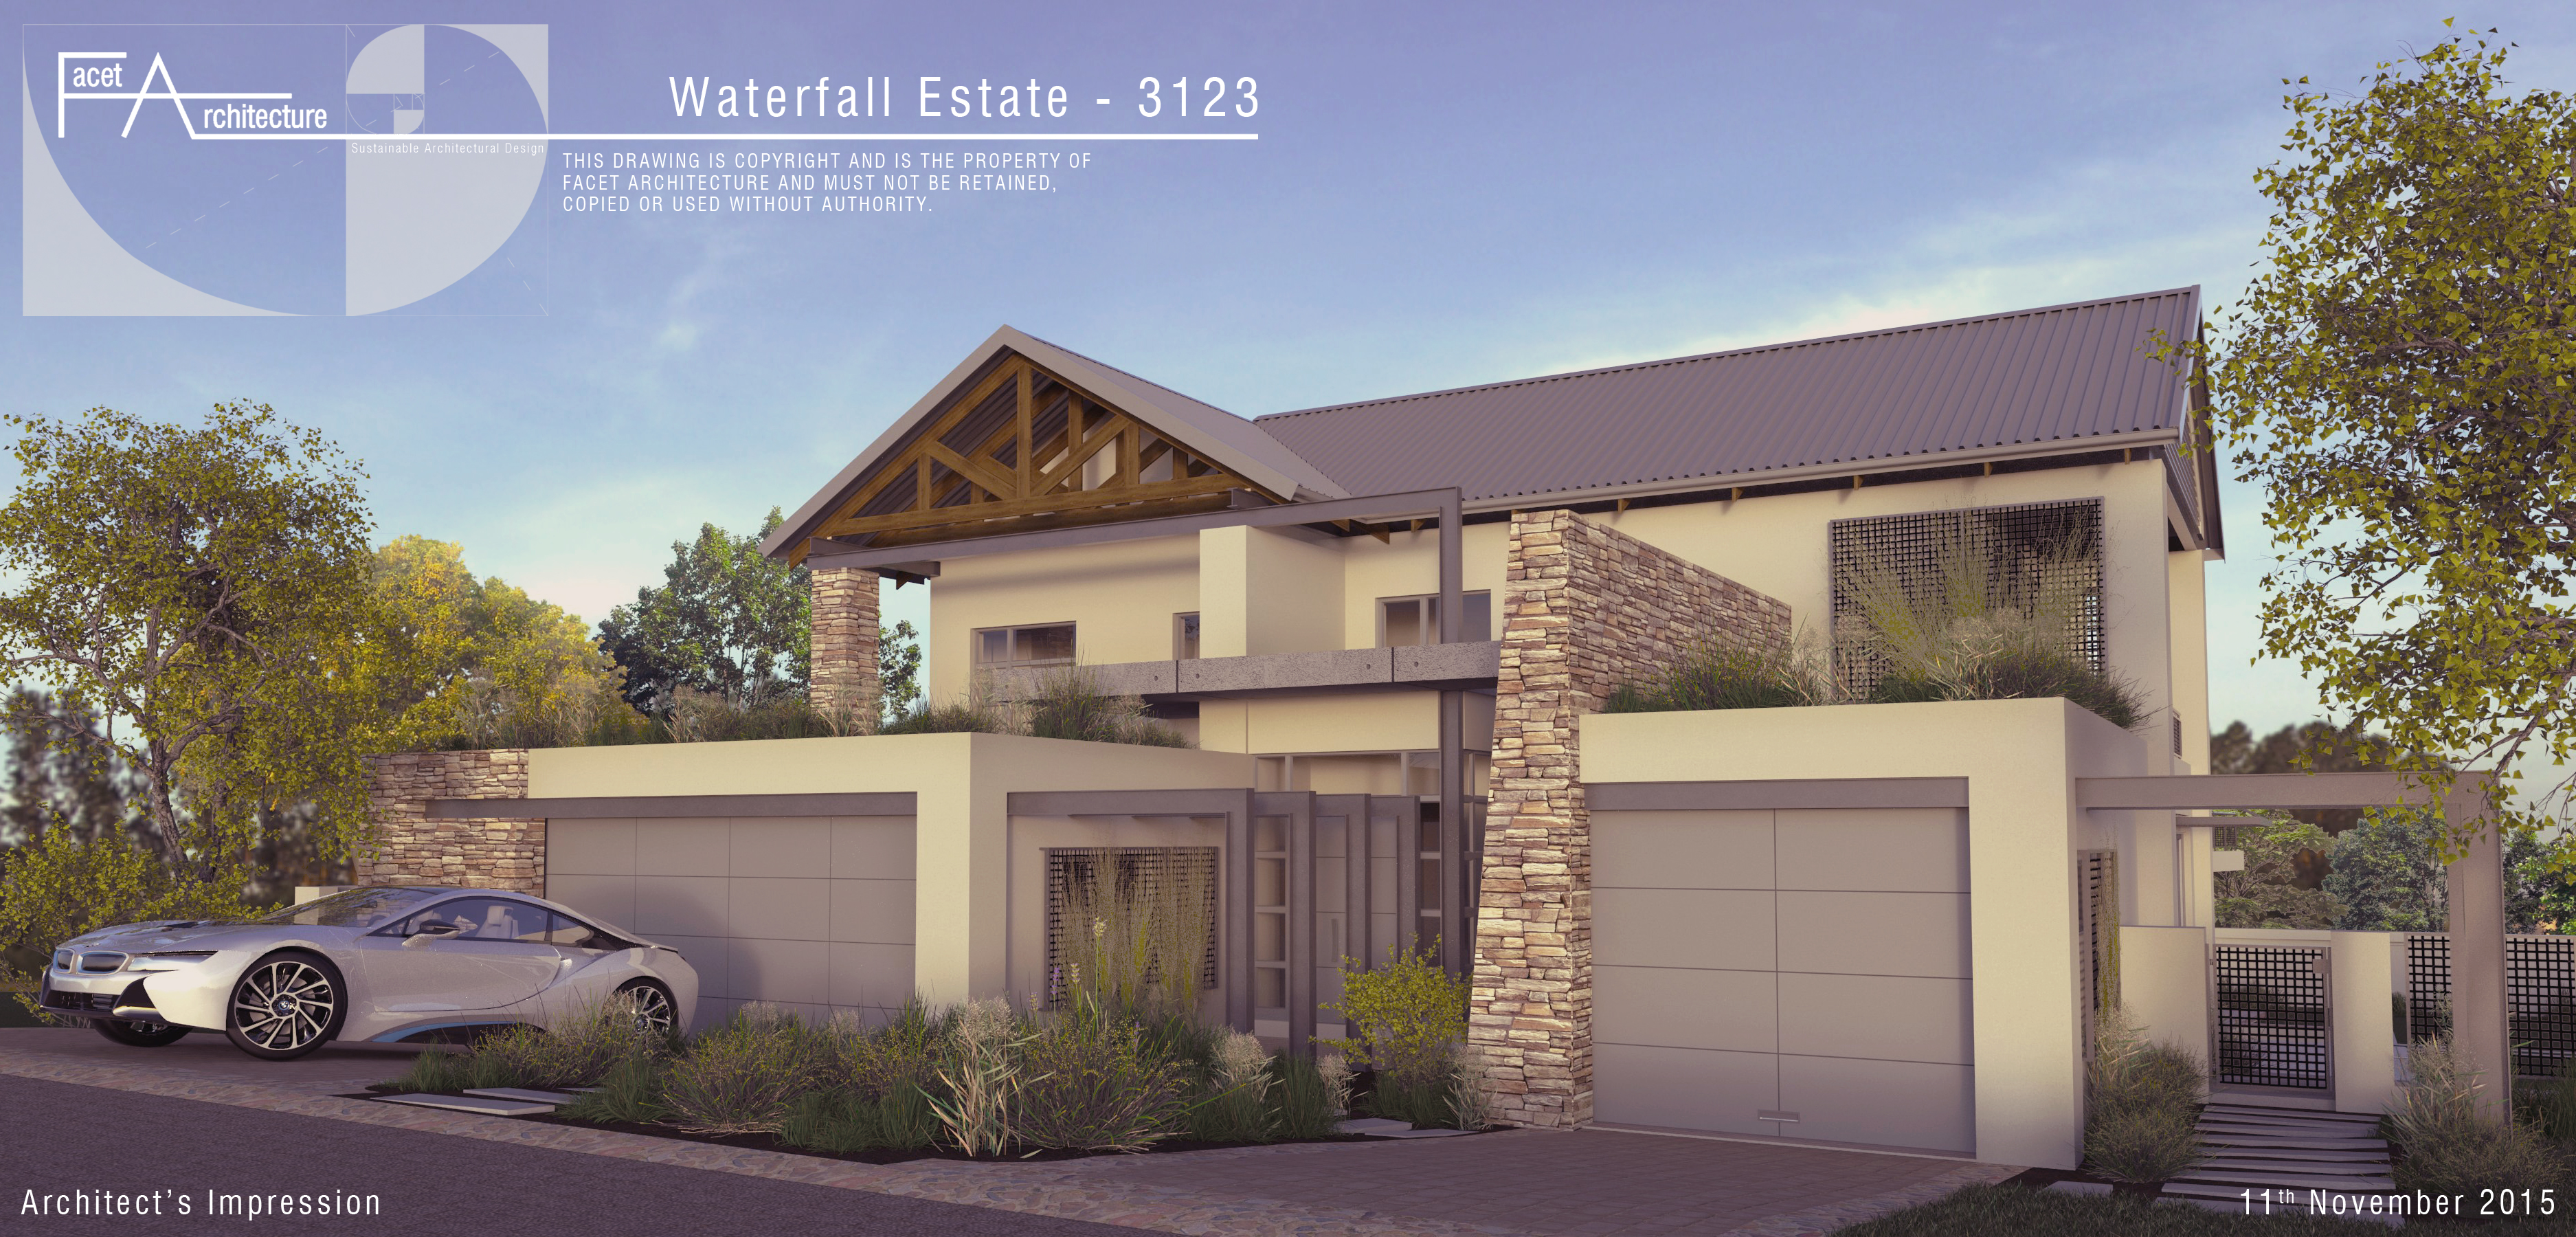 2015-11-11 3123 Waterfall 3123 Street Render